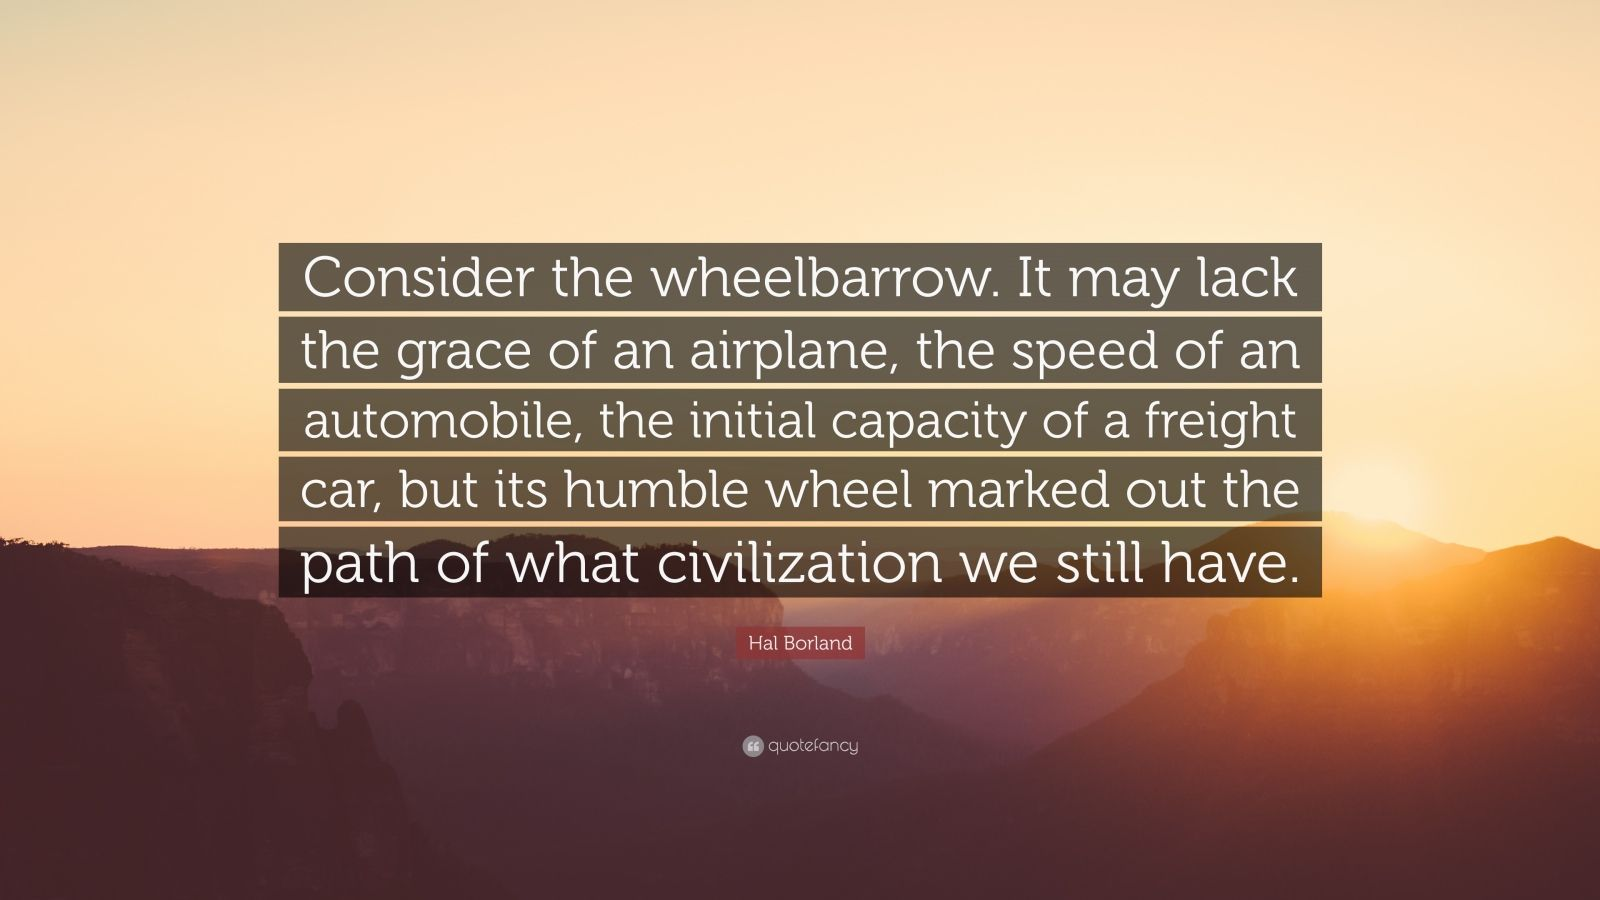 """Hal Borland Quote: """"Consider the wheelbarrow. It may lack the grace of an airplane, the speed of an automobile, the initial capacity of a freight car, but its humble wheel marked out the path of what civilization we still have."""""""